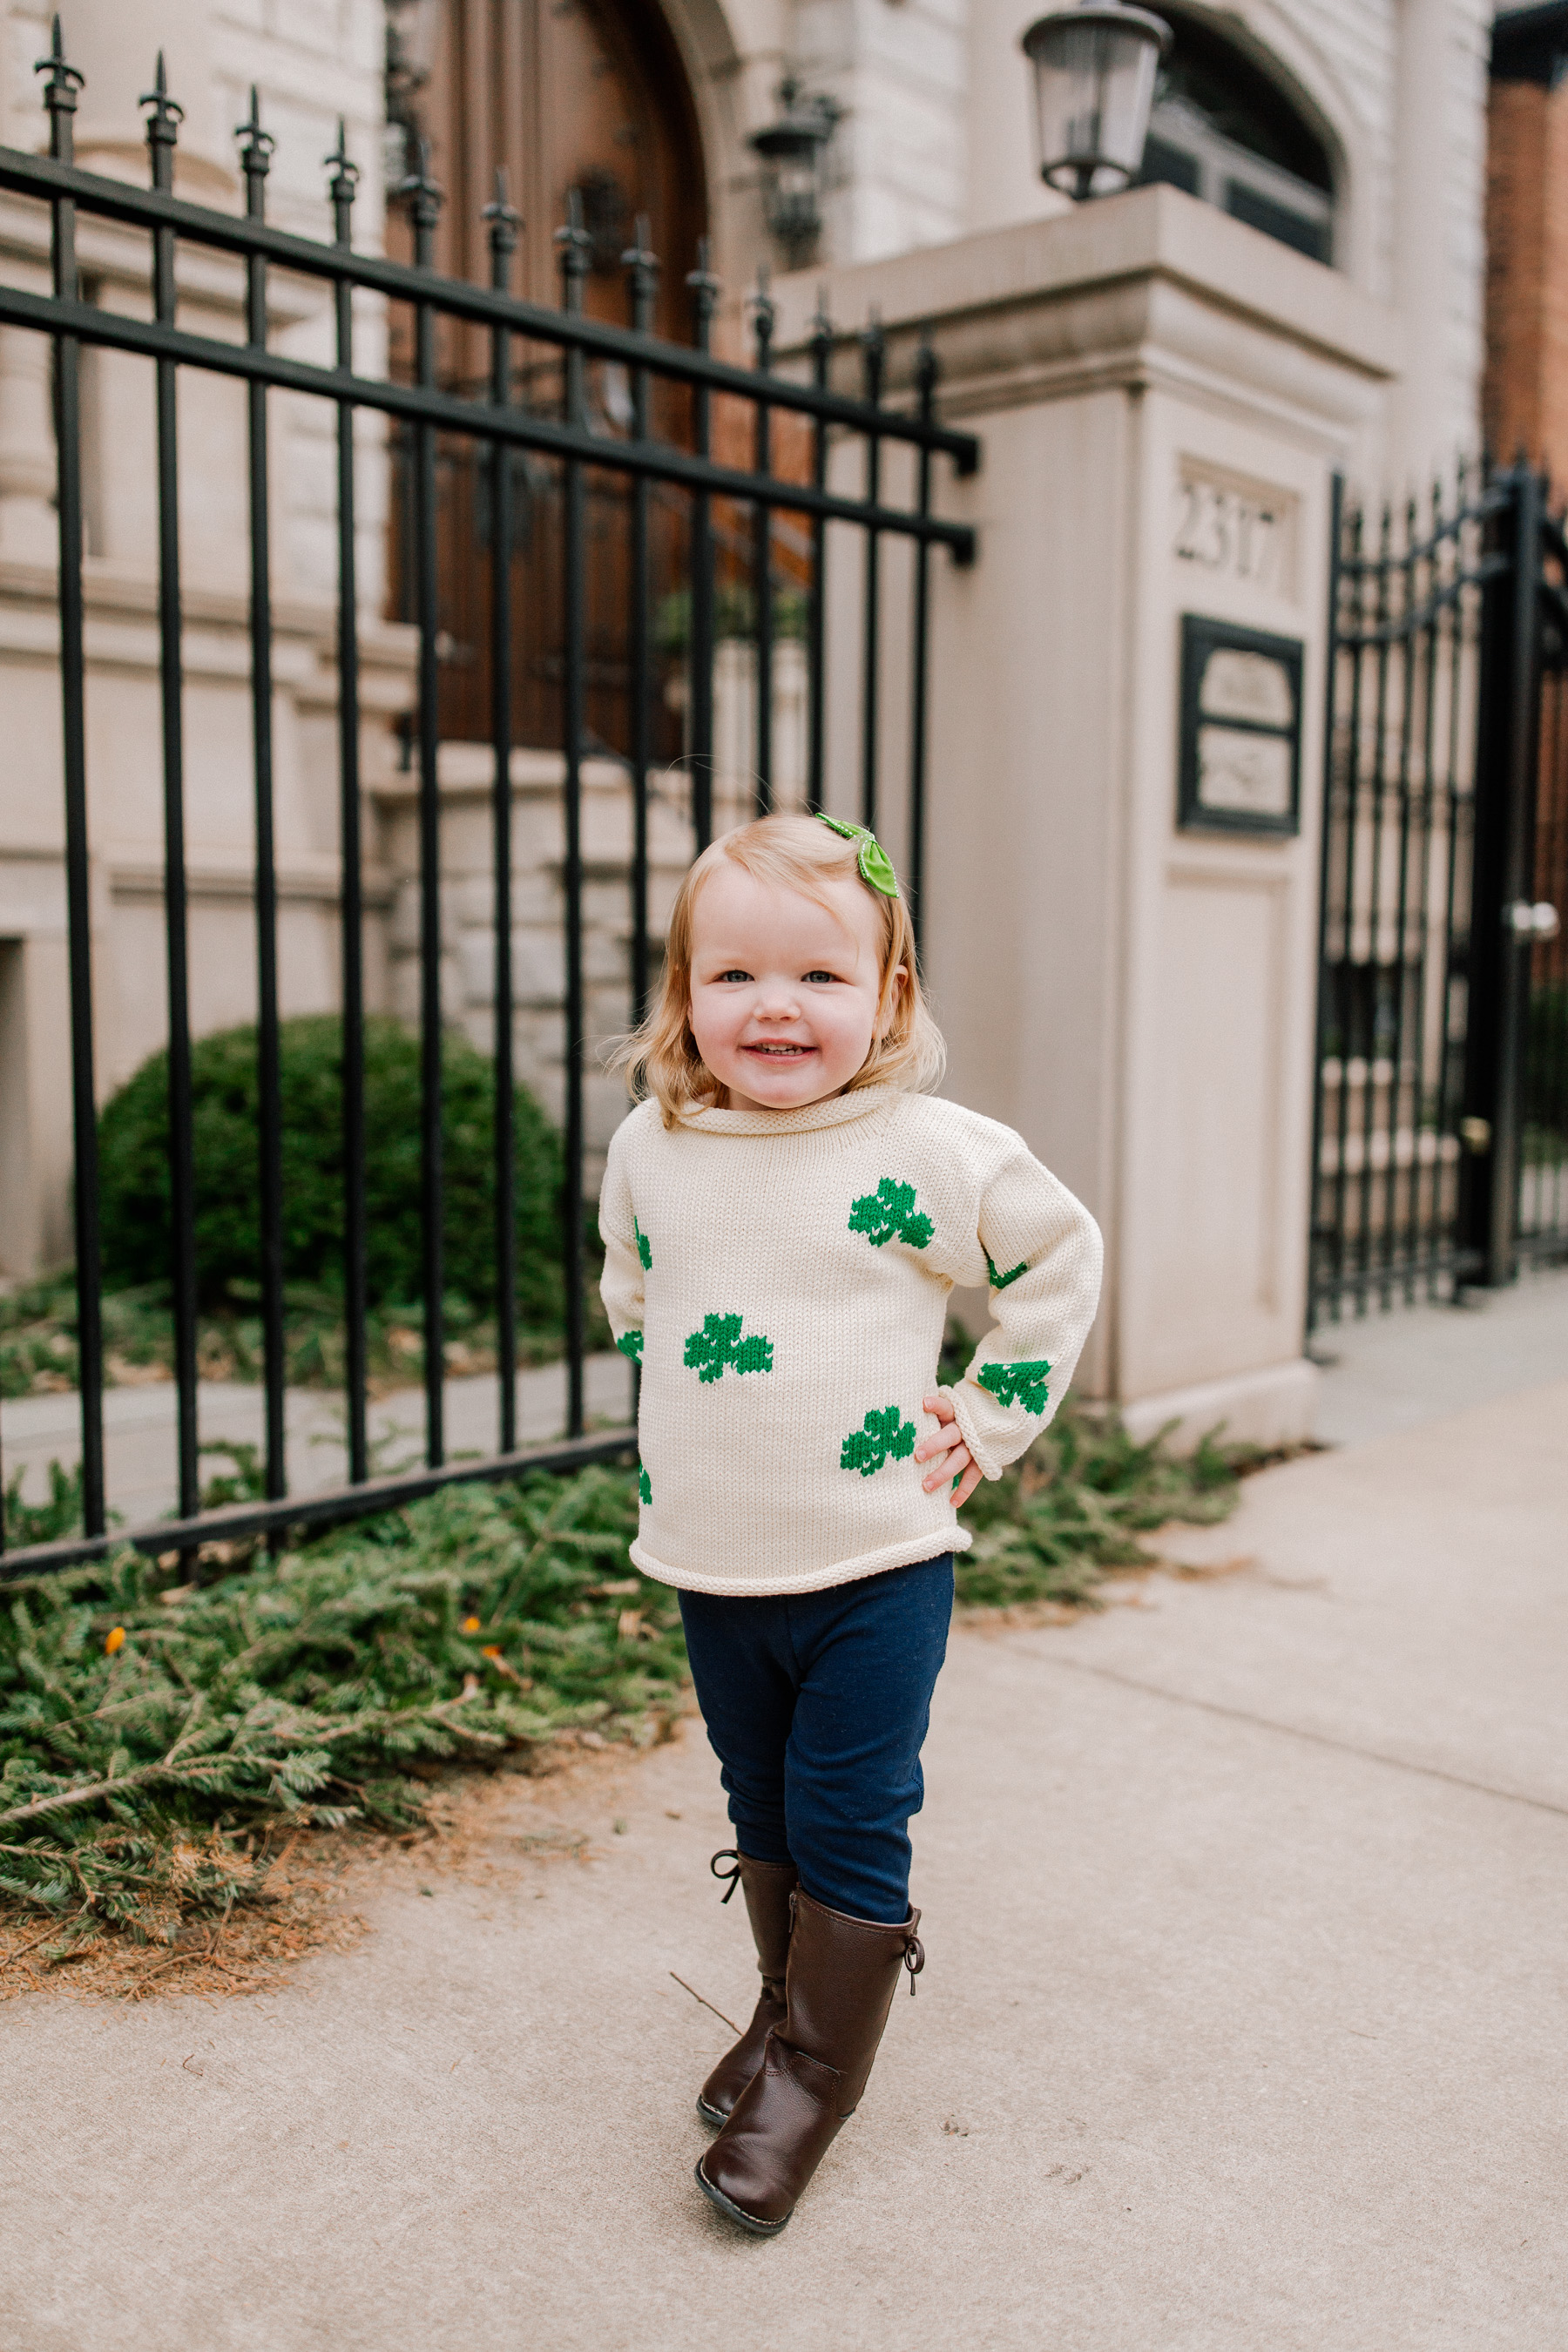 Emma's Outfit: Claver Shamrock Sweater / Gap Kids Jeggings and Boots / Little Makes Big Bow c/o